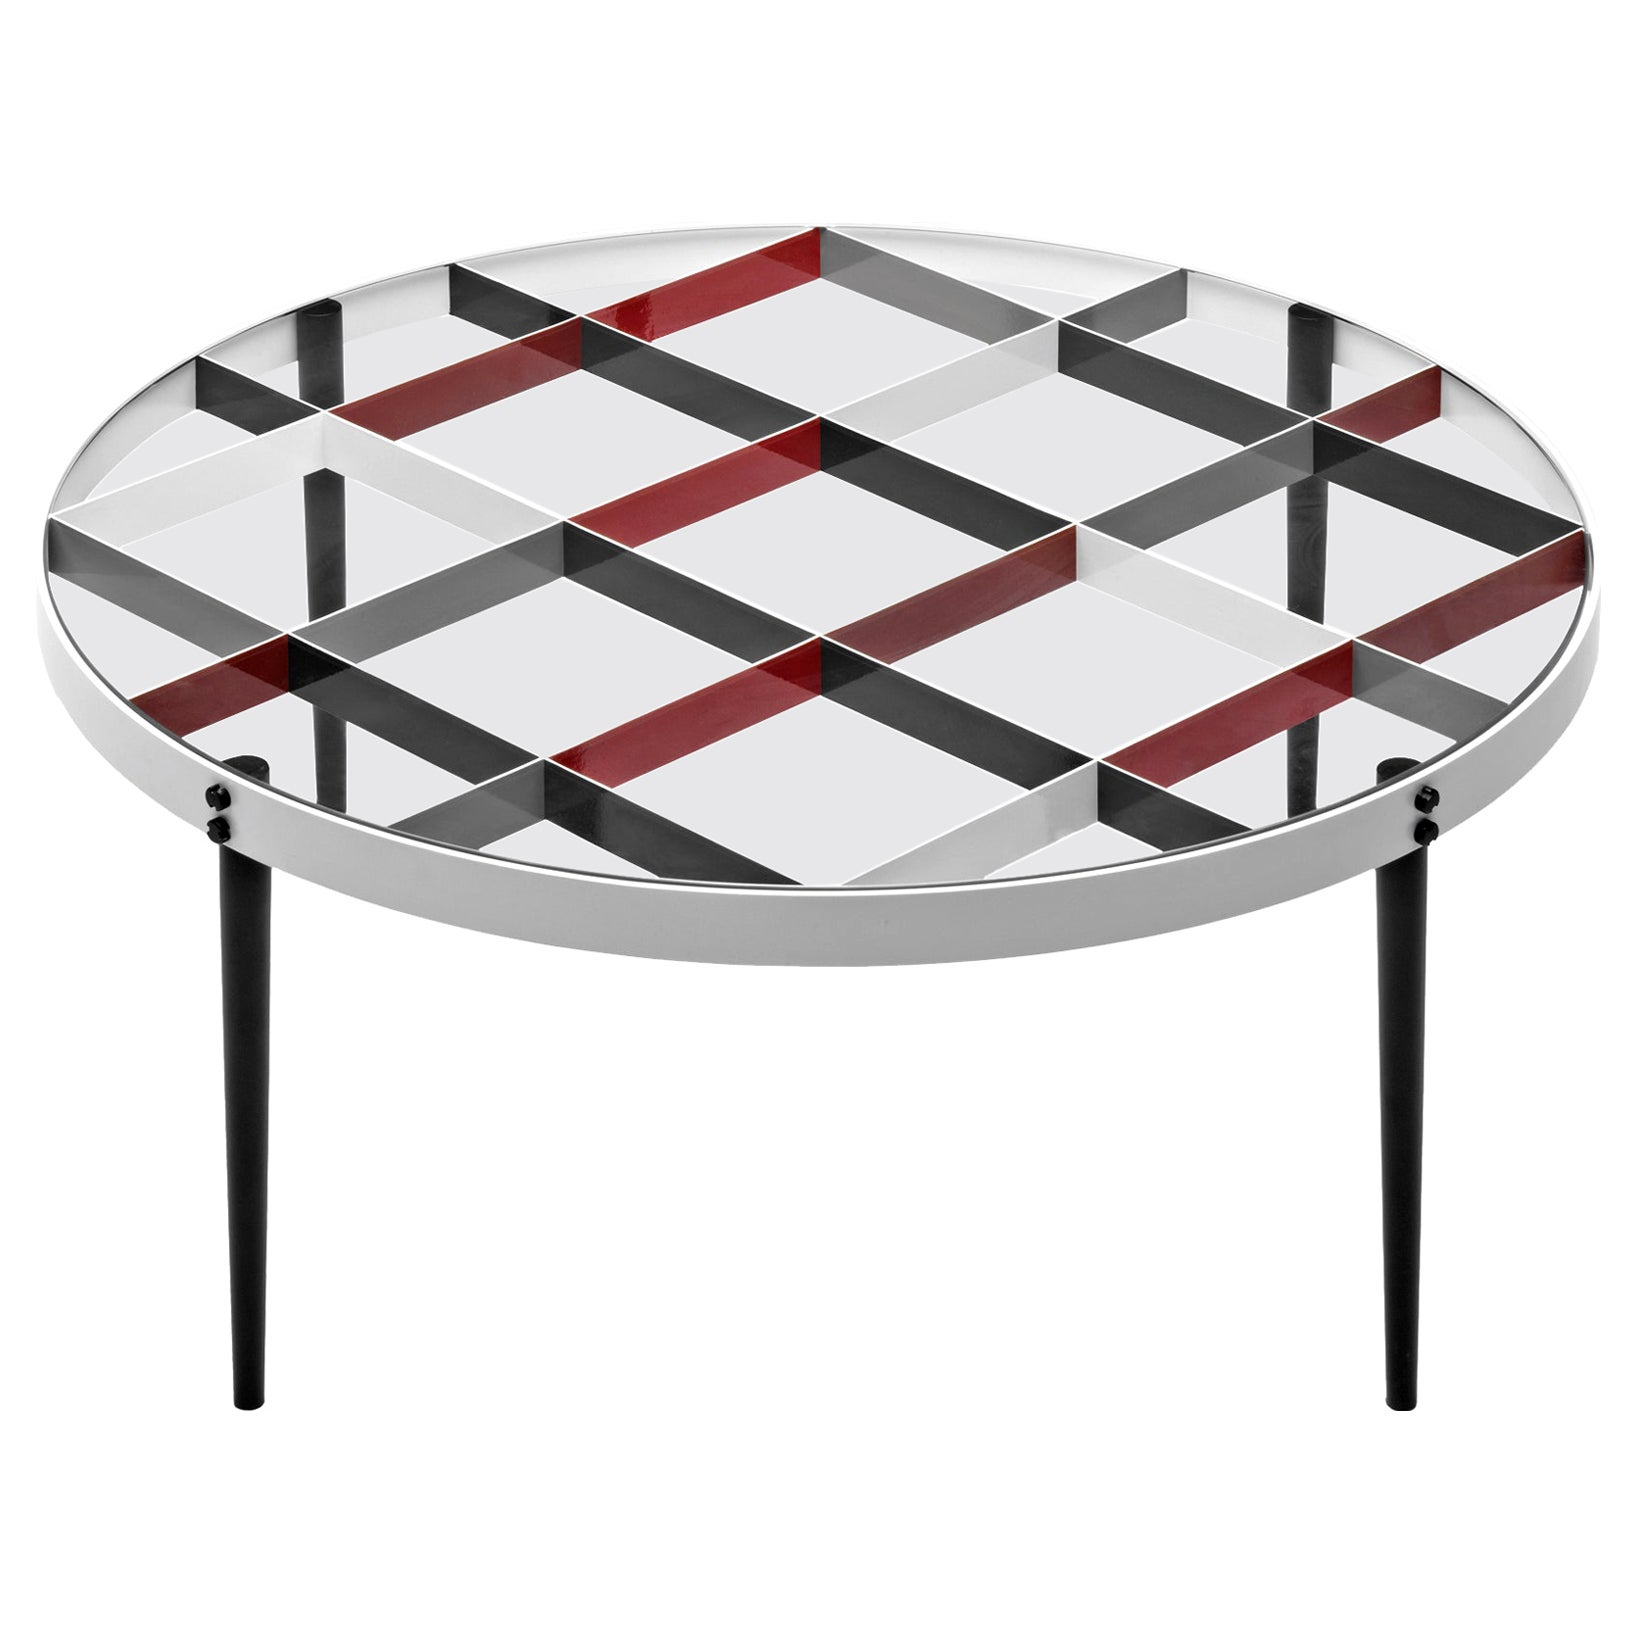 Molteni&C D.555.1 Small Coffee Table in Steel and Tempered Glass by Gio Ponti